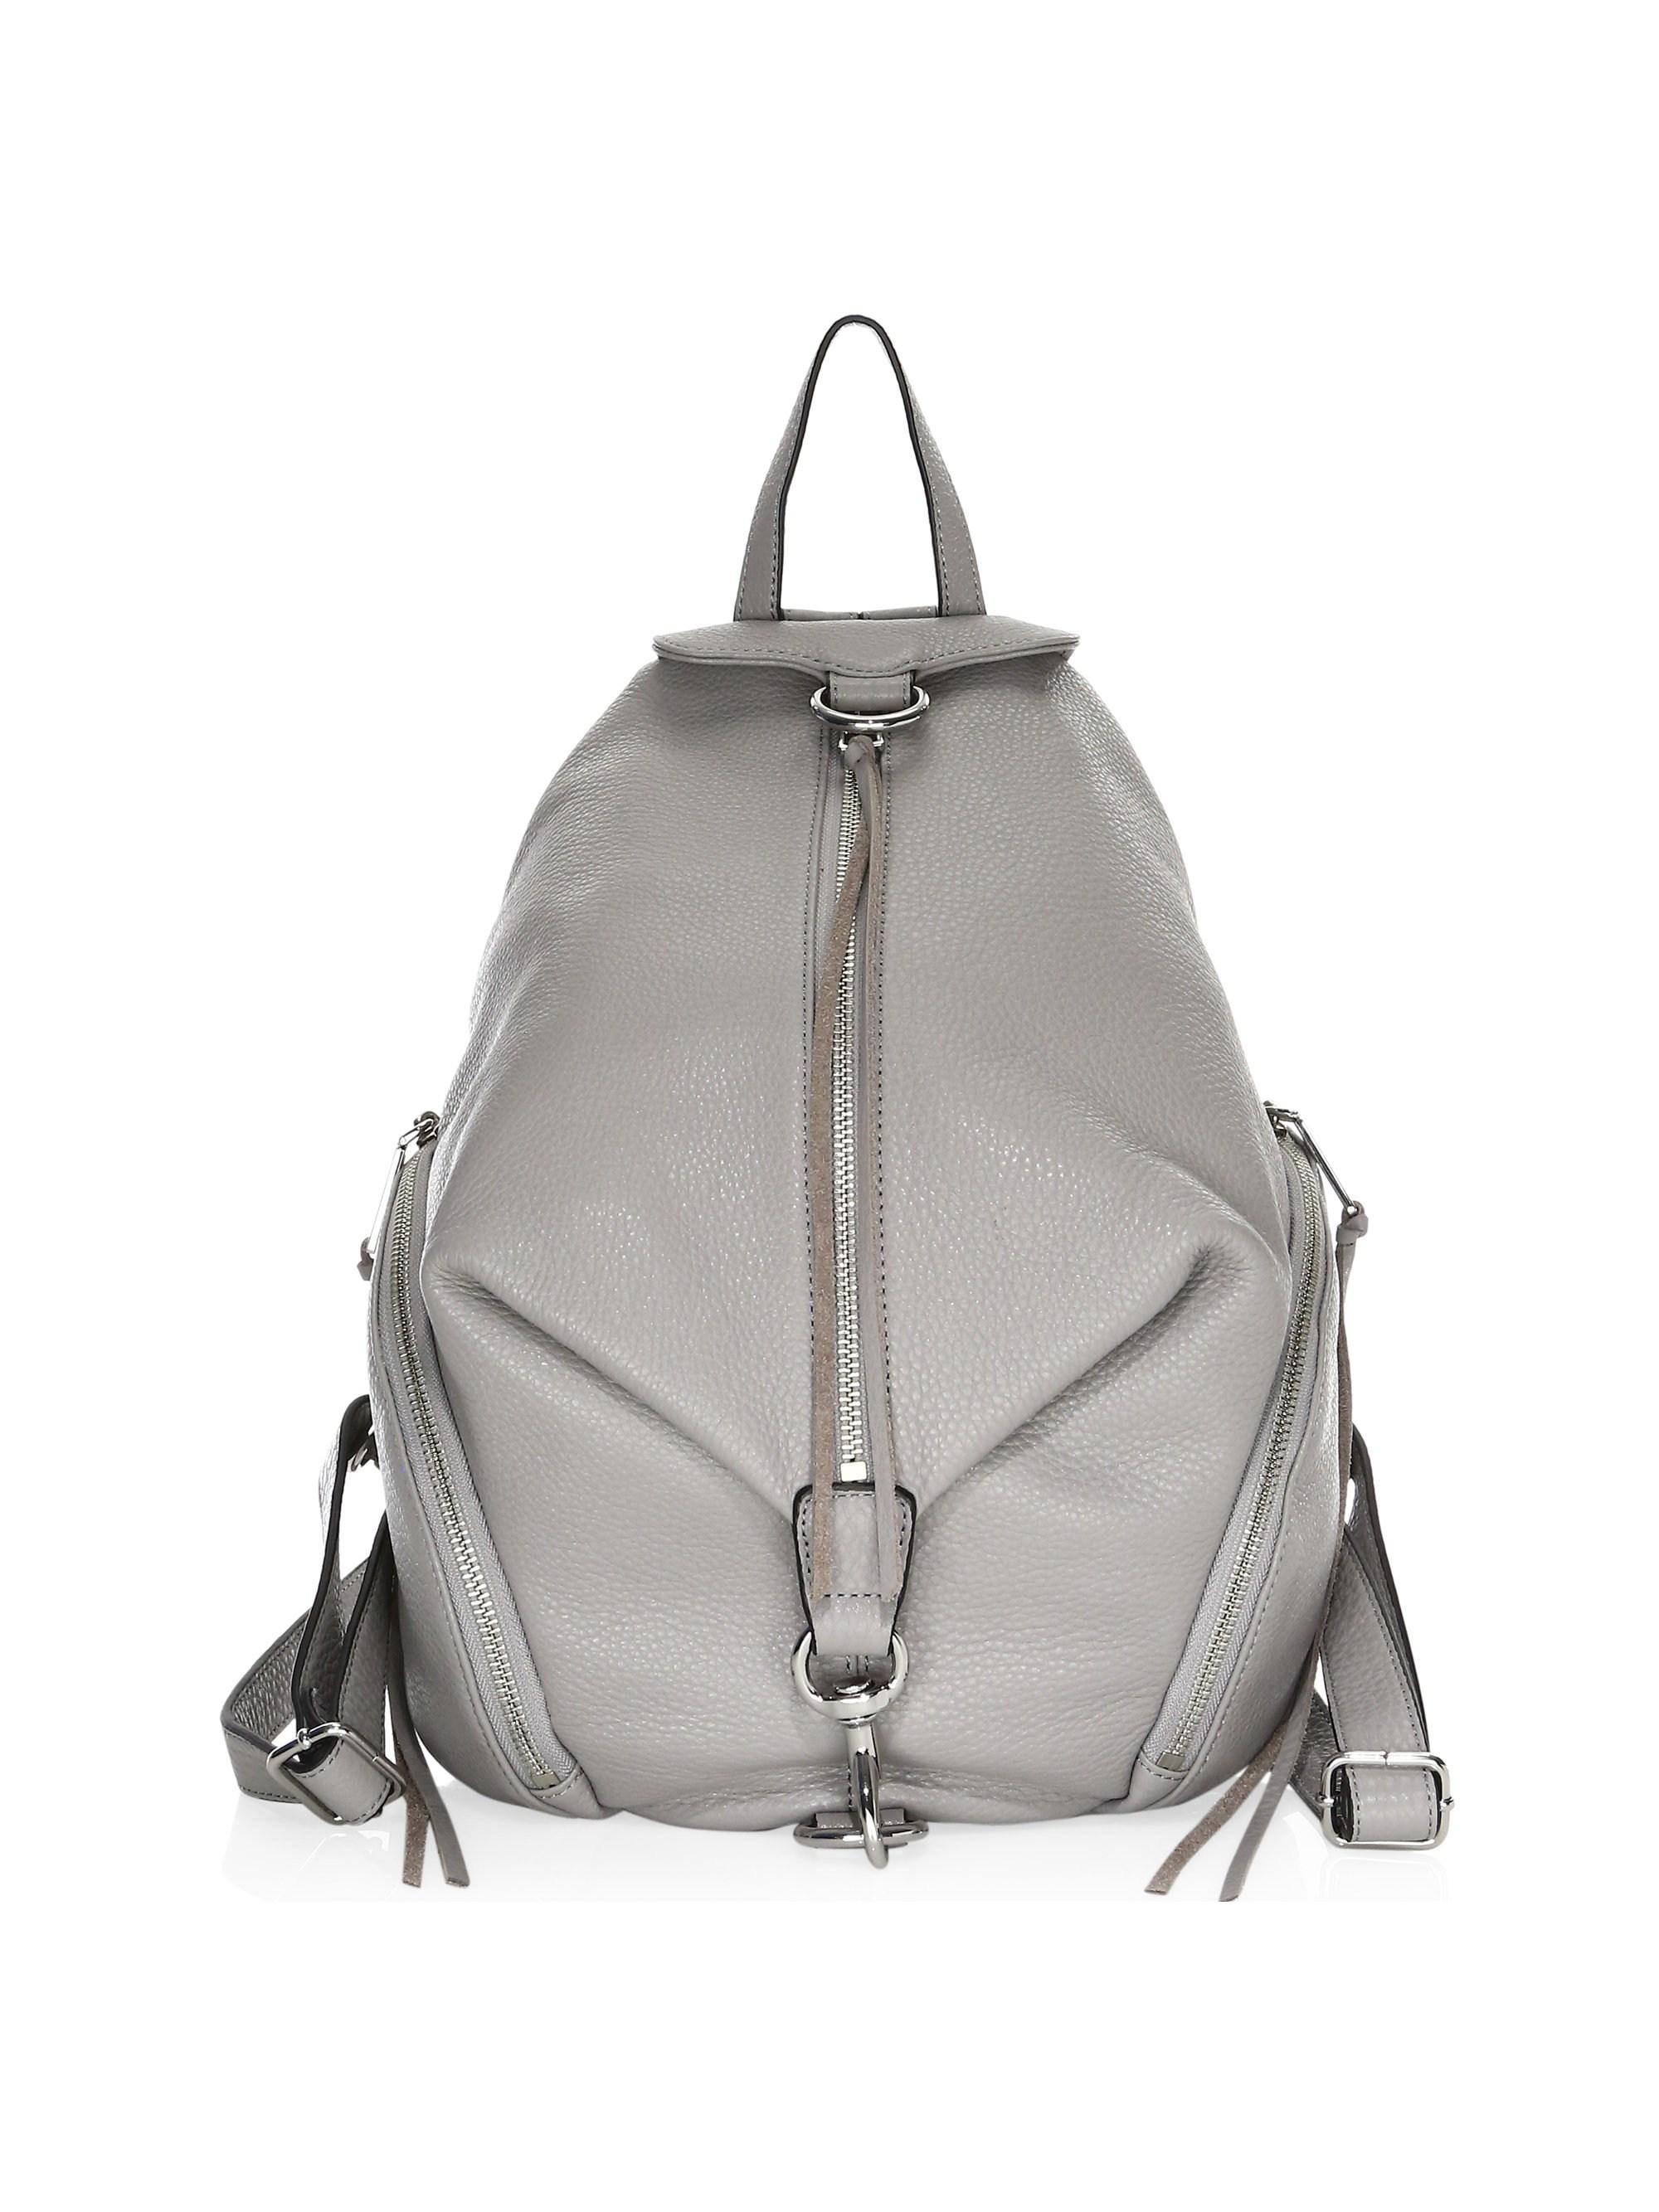 bd2c74286 Lyst - Rebecca Minkoff Julian Leather Backpack in Gray - Save 30%